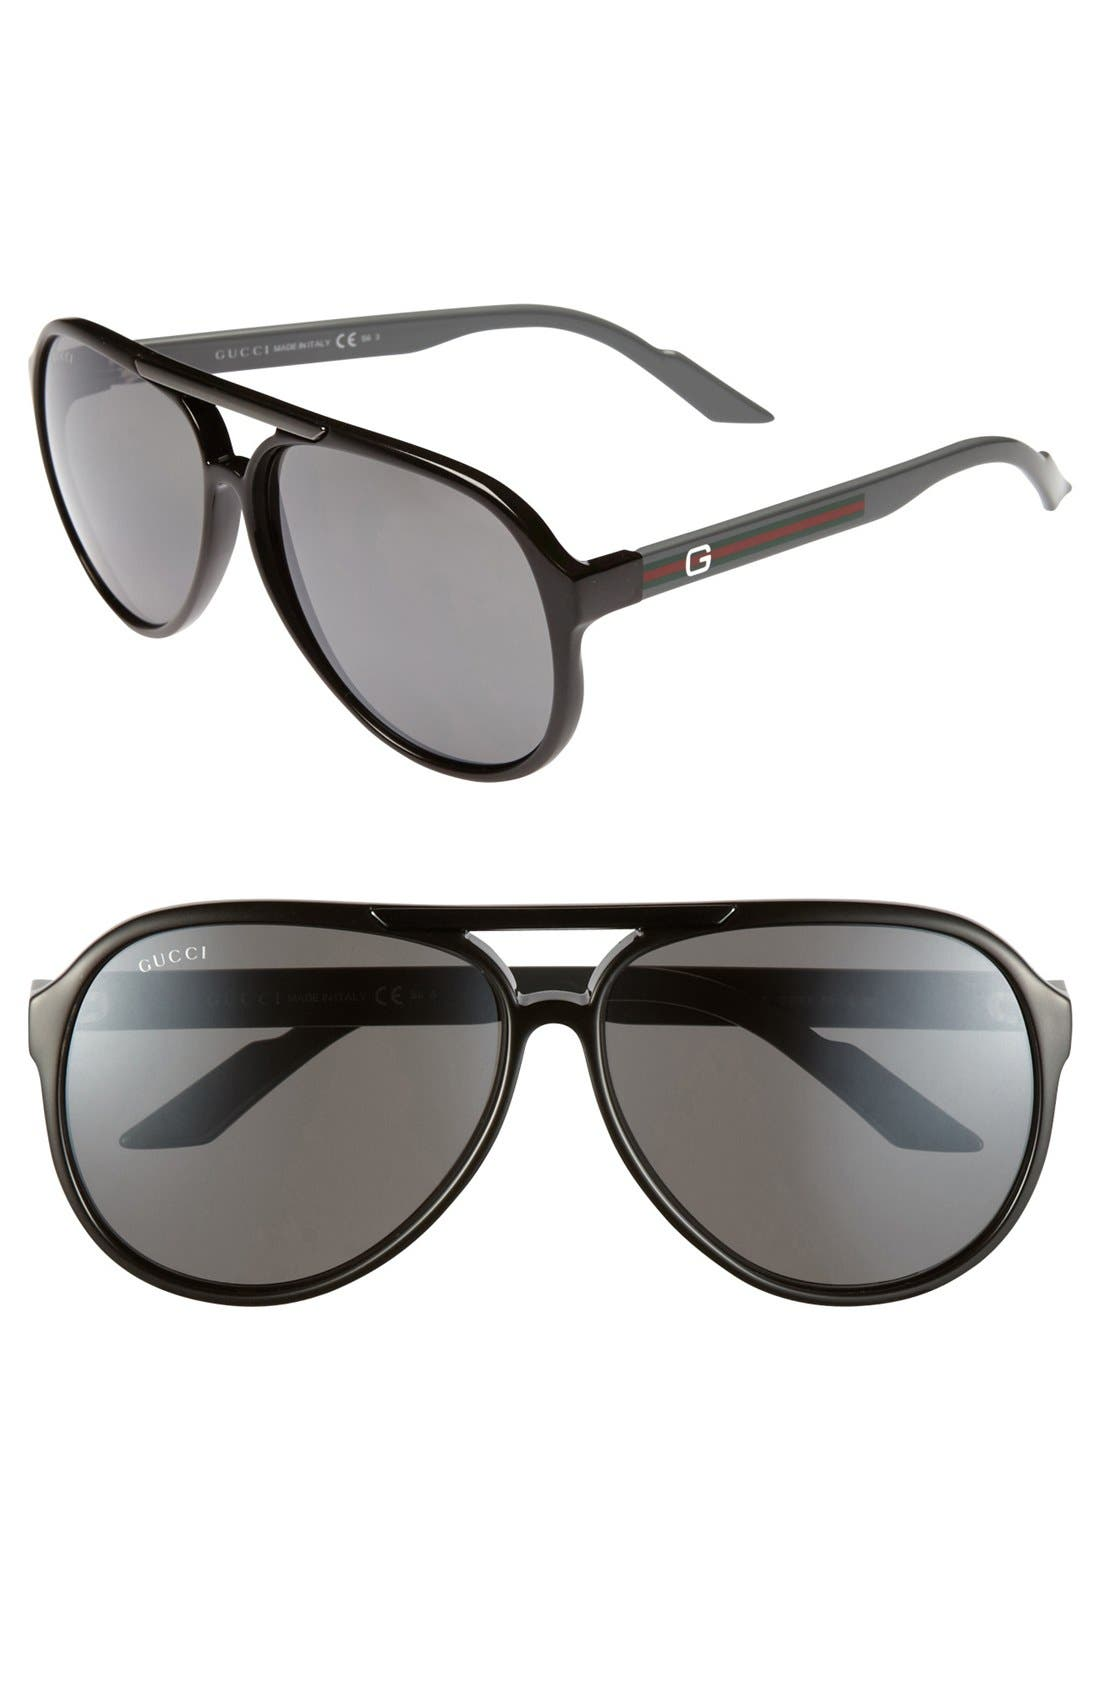 Main Image - Gucci '1627/S' 59mm Aviator Sunglasses